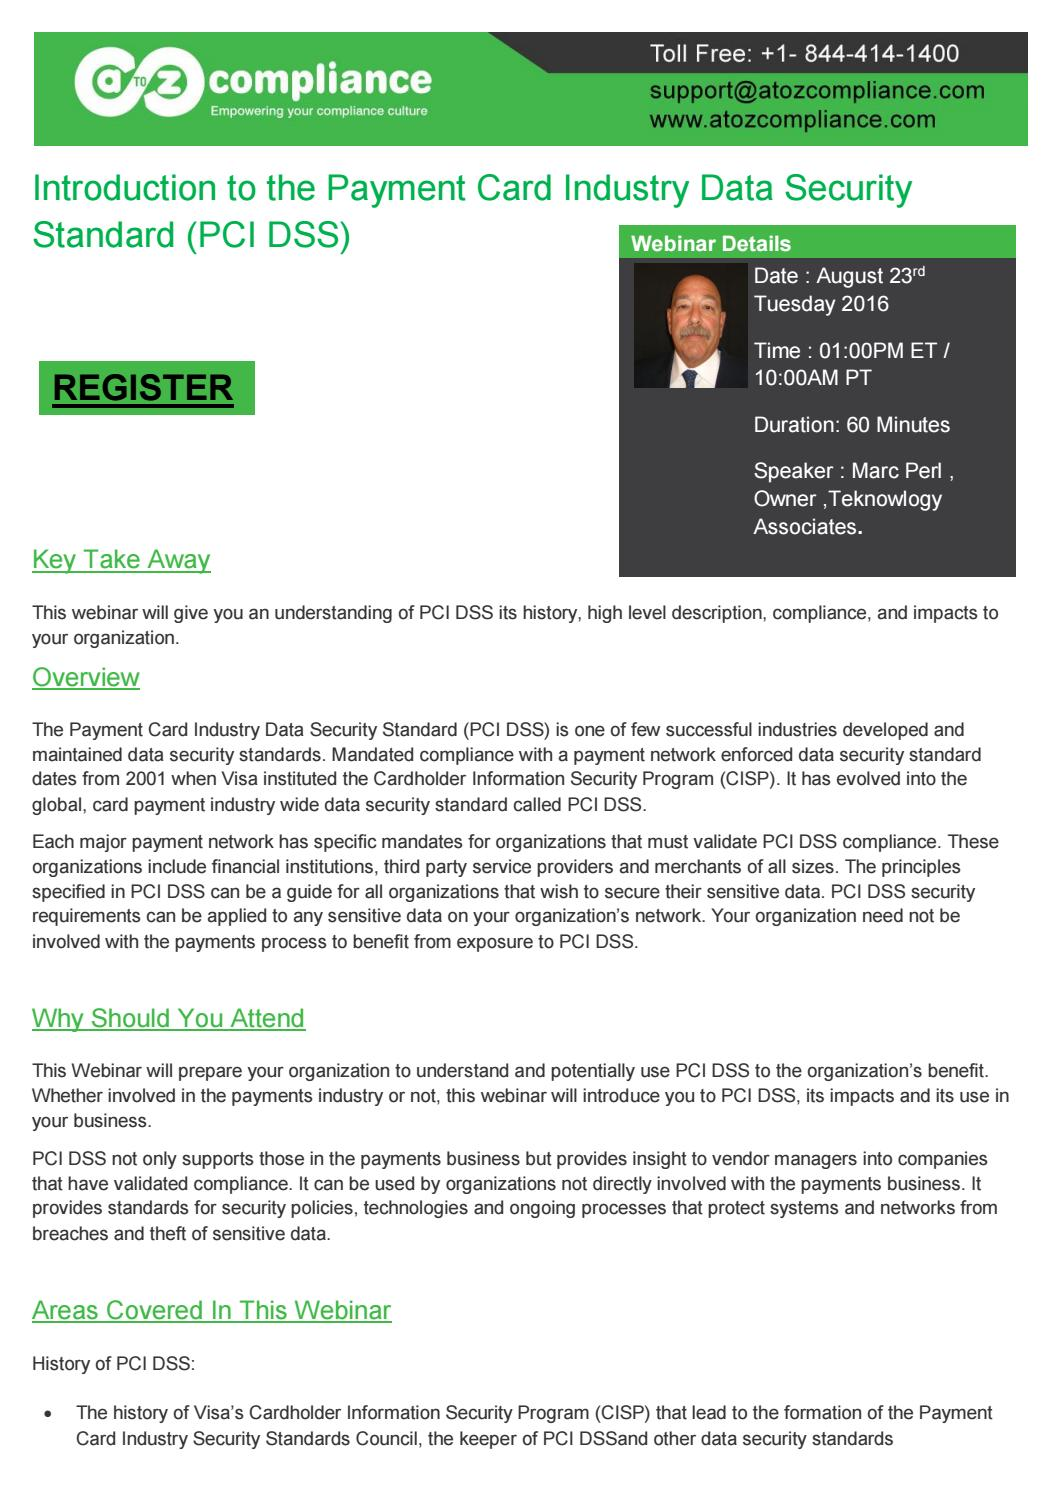 Introduction To The Payment Card Industry Data Security Standard Standards Pci Dss By Atoz Compliance Atozcompliance Issuu